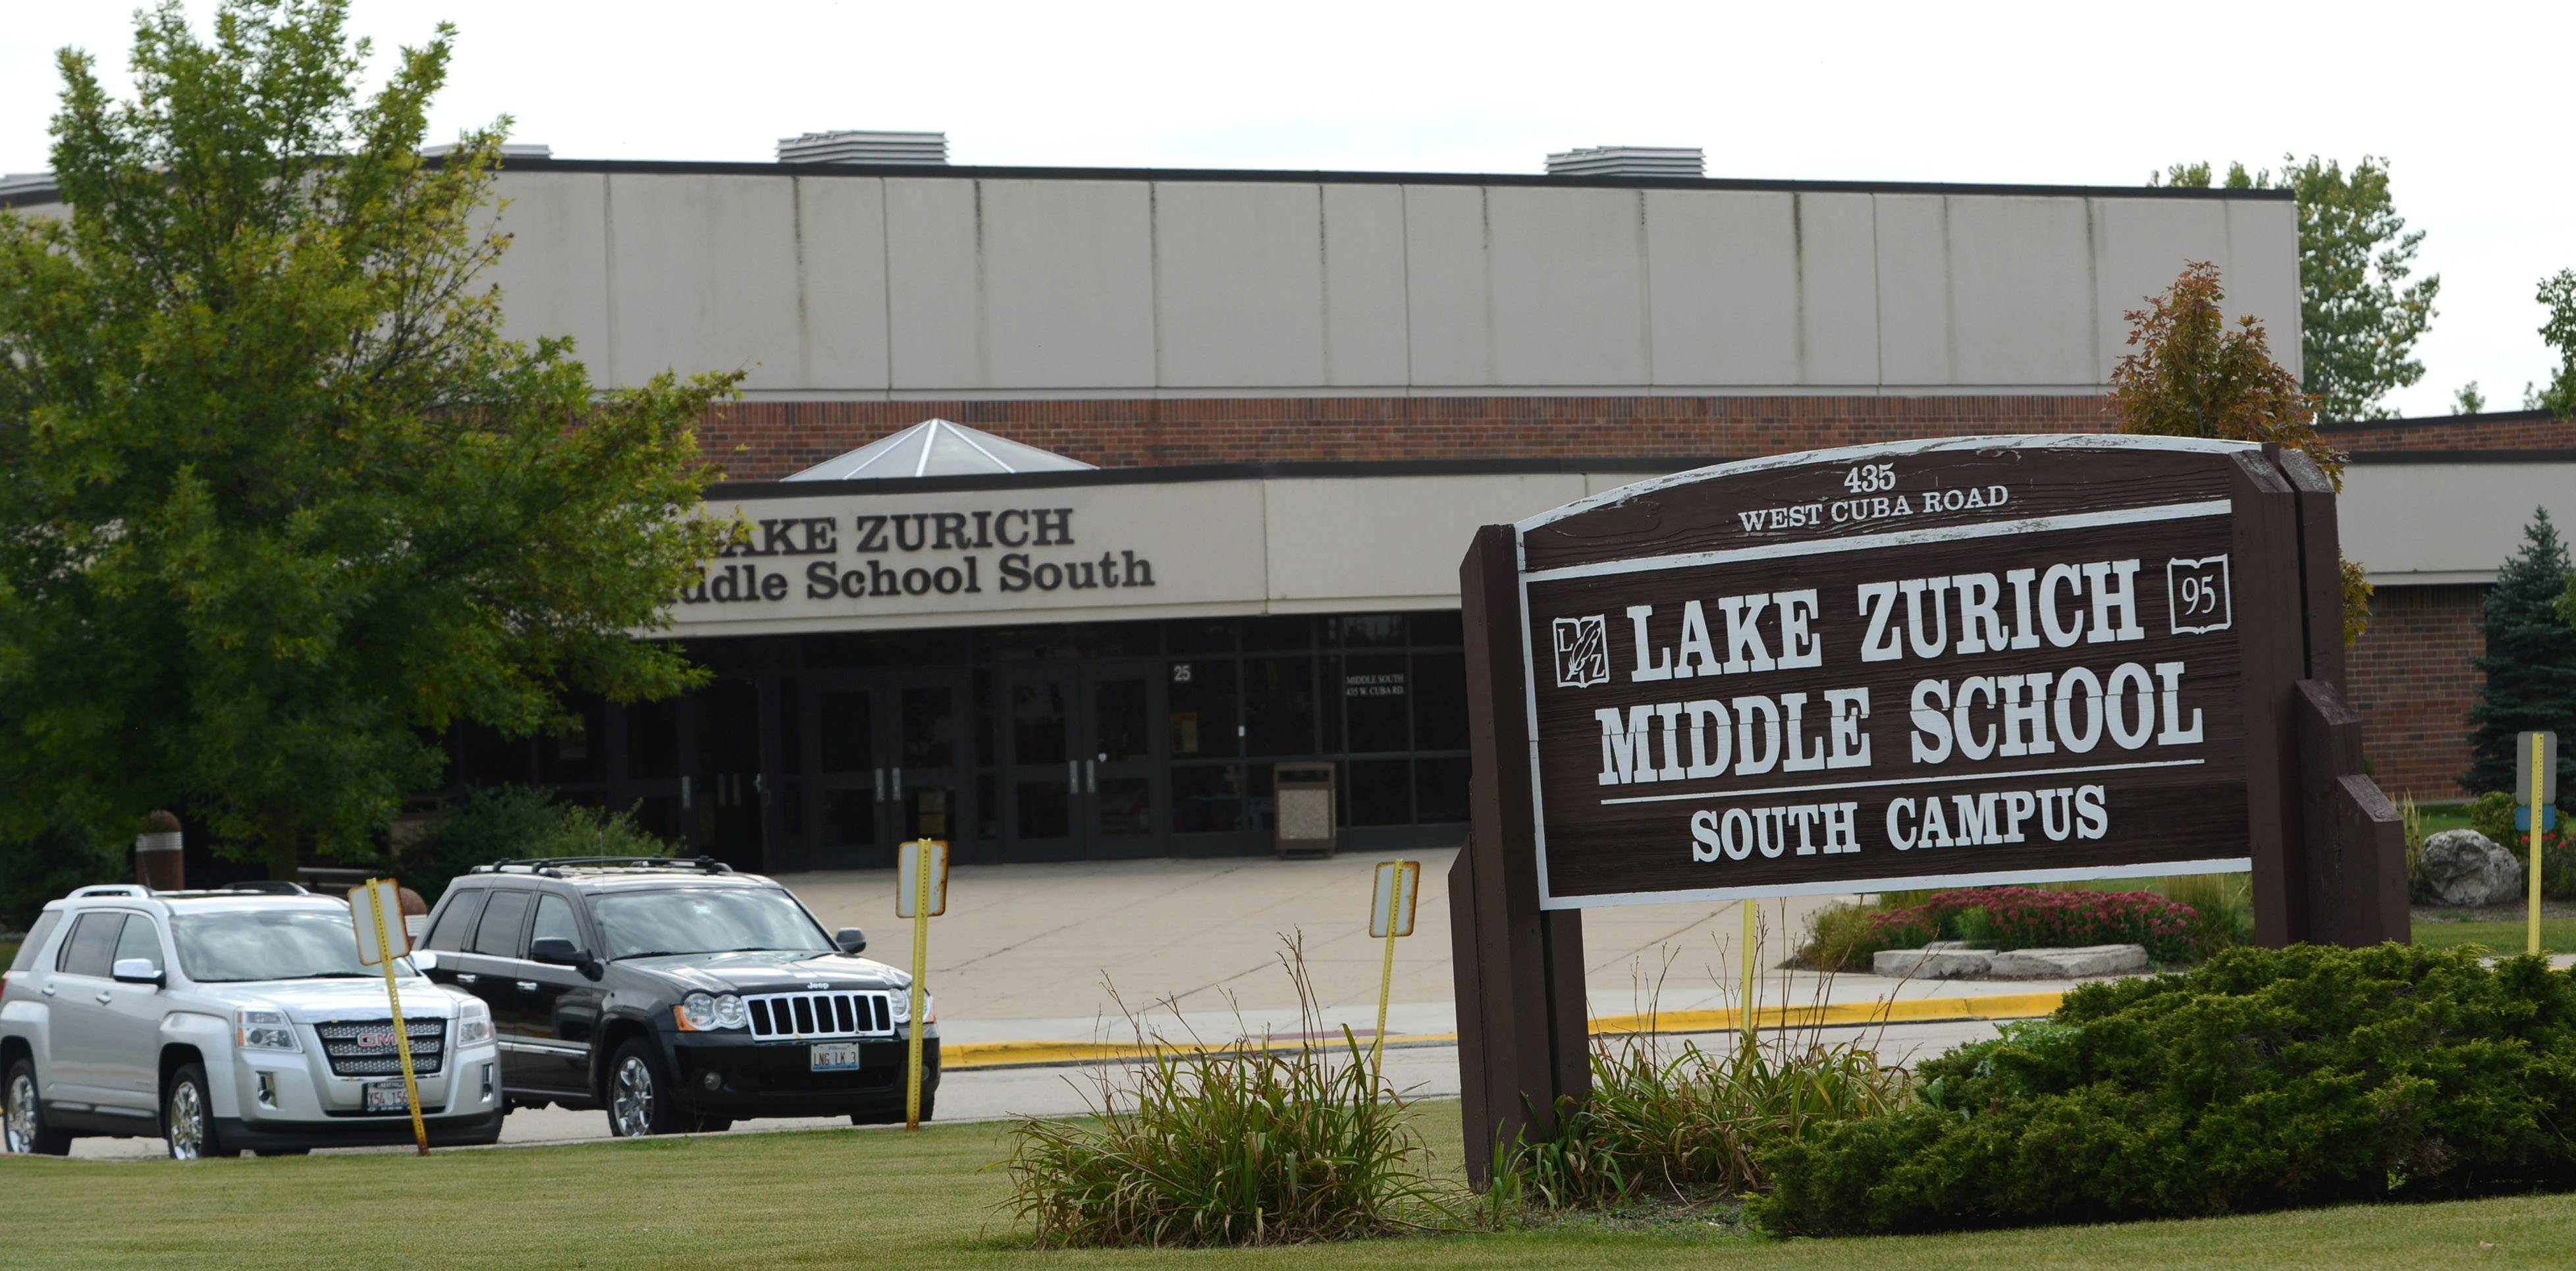 Lake Zurich Unit District 95 now has excessive heat procedures for schools without central air conditioning. Lake Zurich Middle School South is among the buildings without central air.